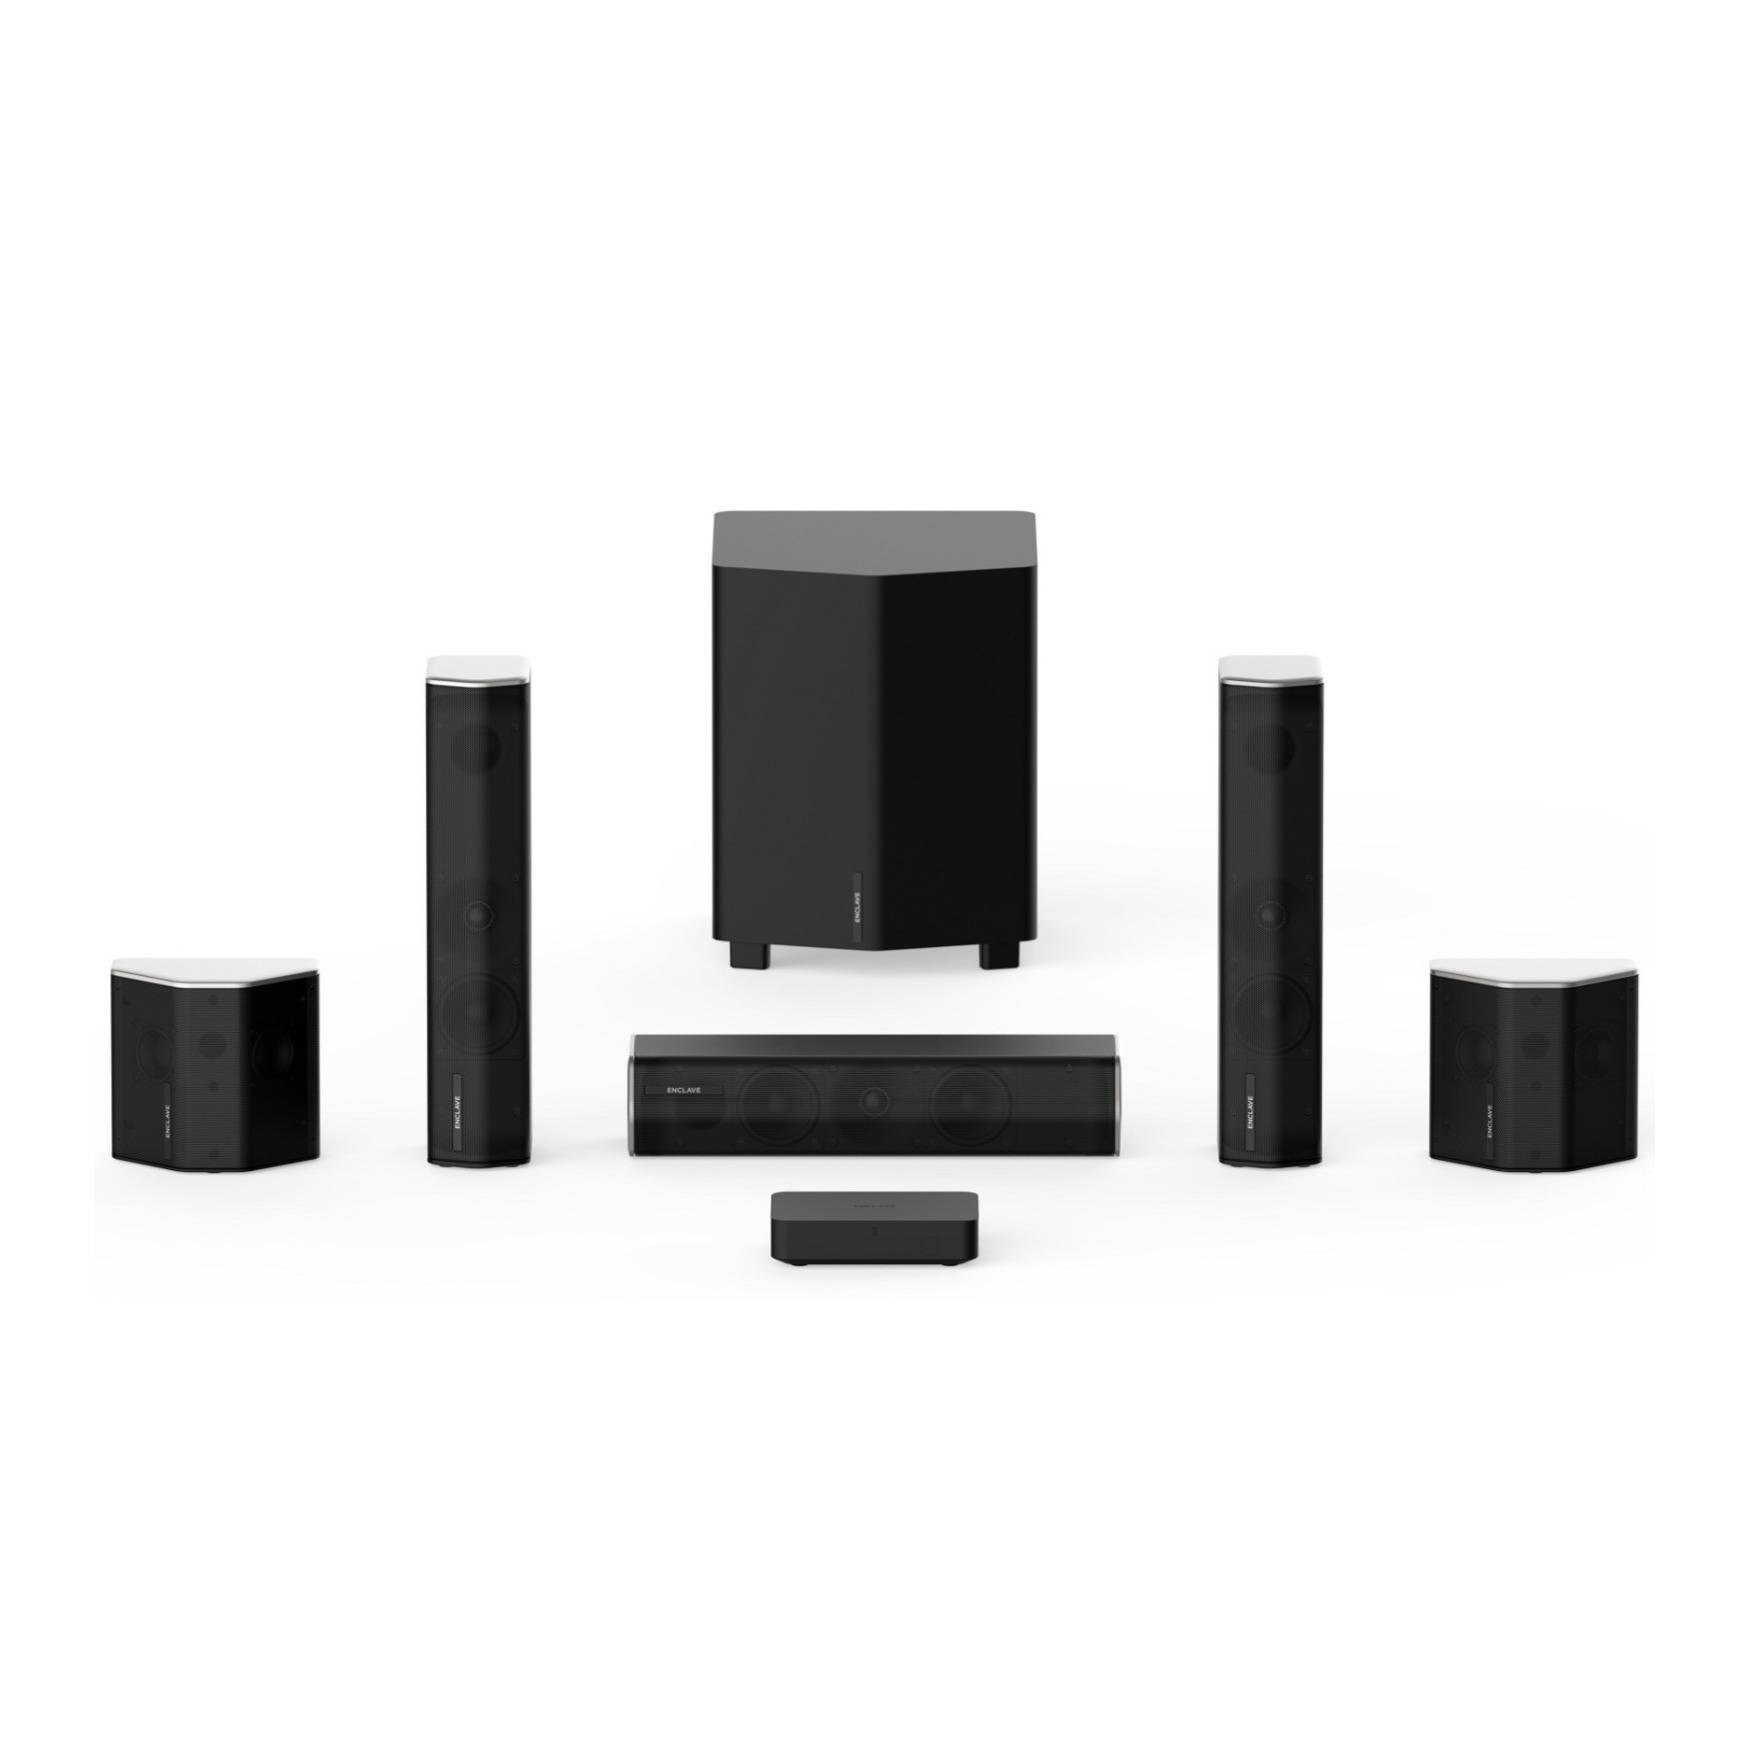 Enclave Audio Technologies CineHome II CineHub Edition 5.1-Channel Wireless Home Theater System